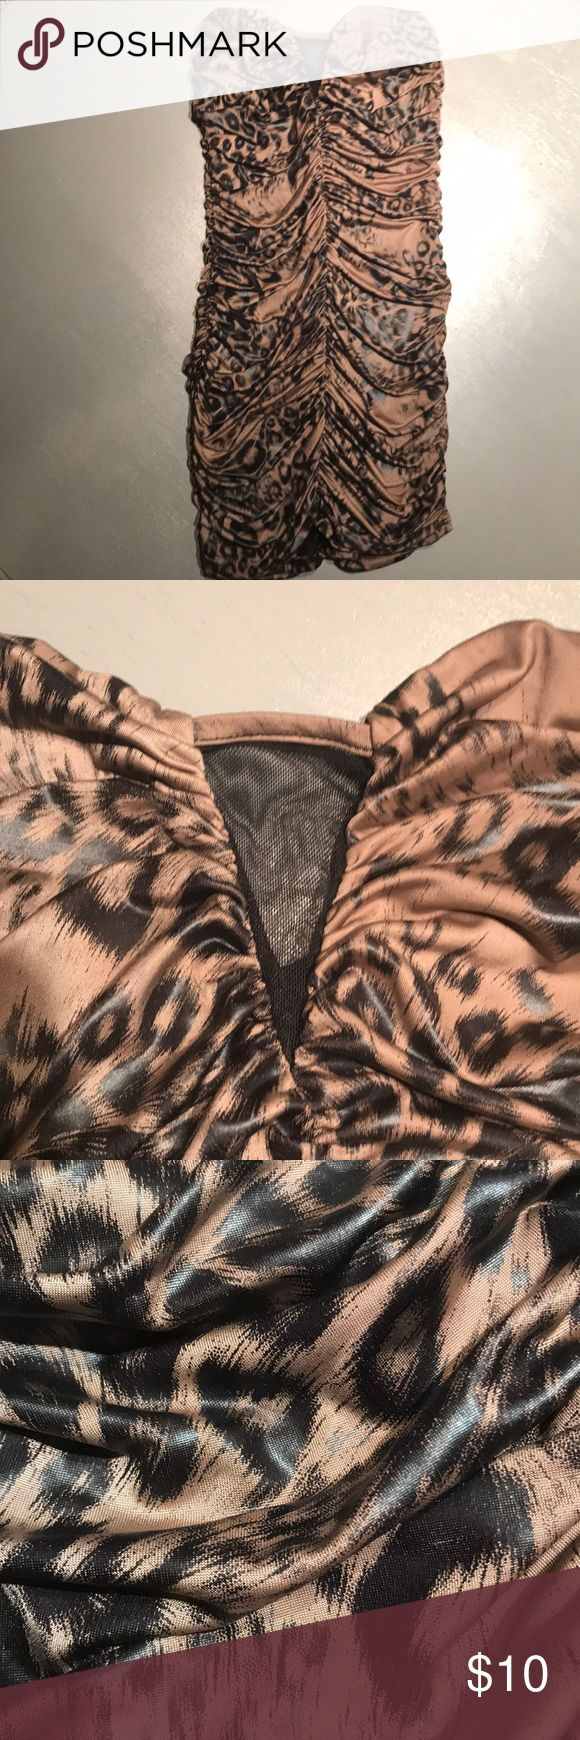 Fitted cheetah dress Comfortable, stretch fitted strapless cheetah dress with sheer cutout peekaboo cleavage. Forever 21 Dresses Mini